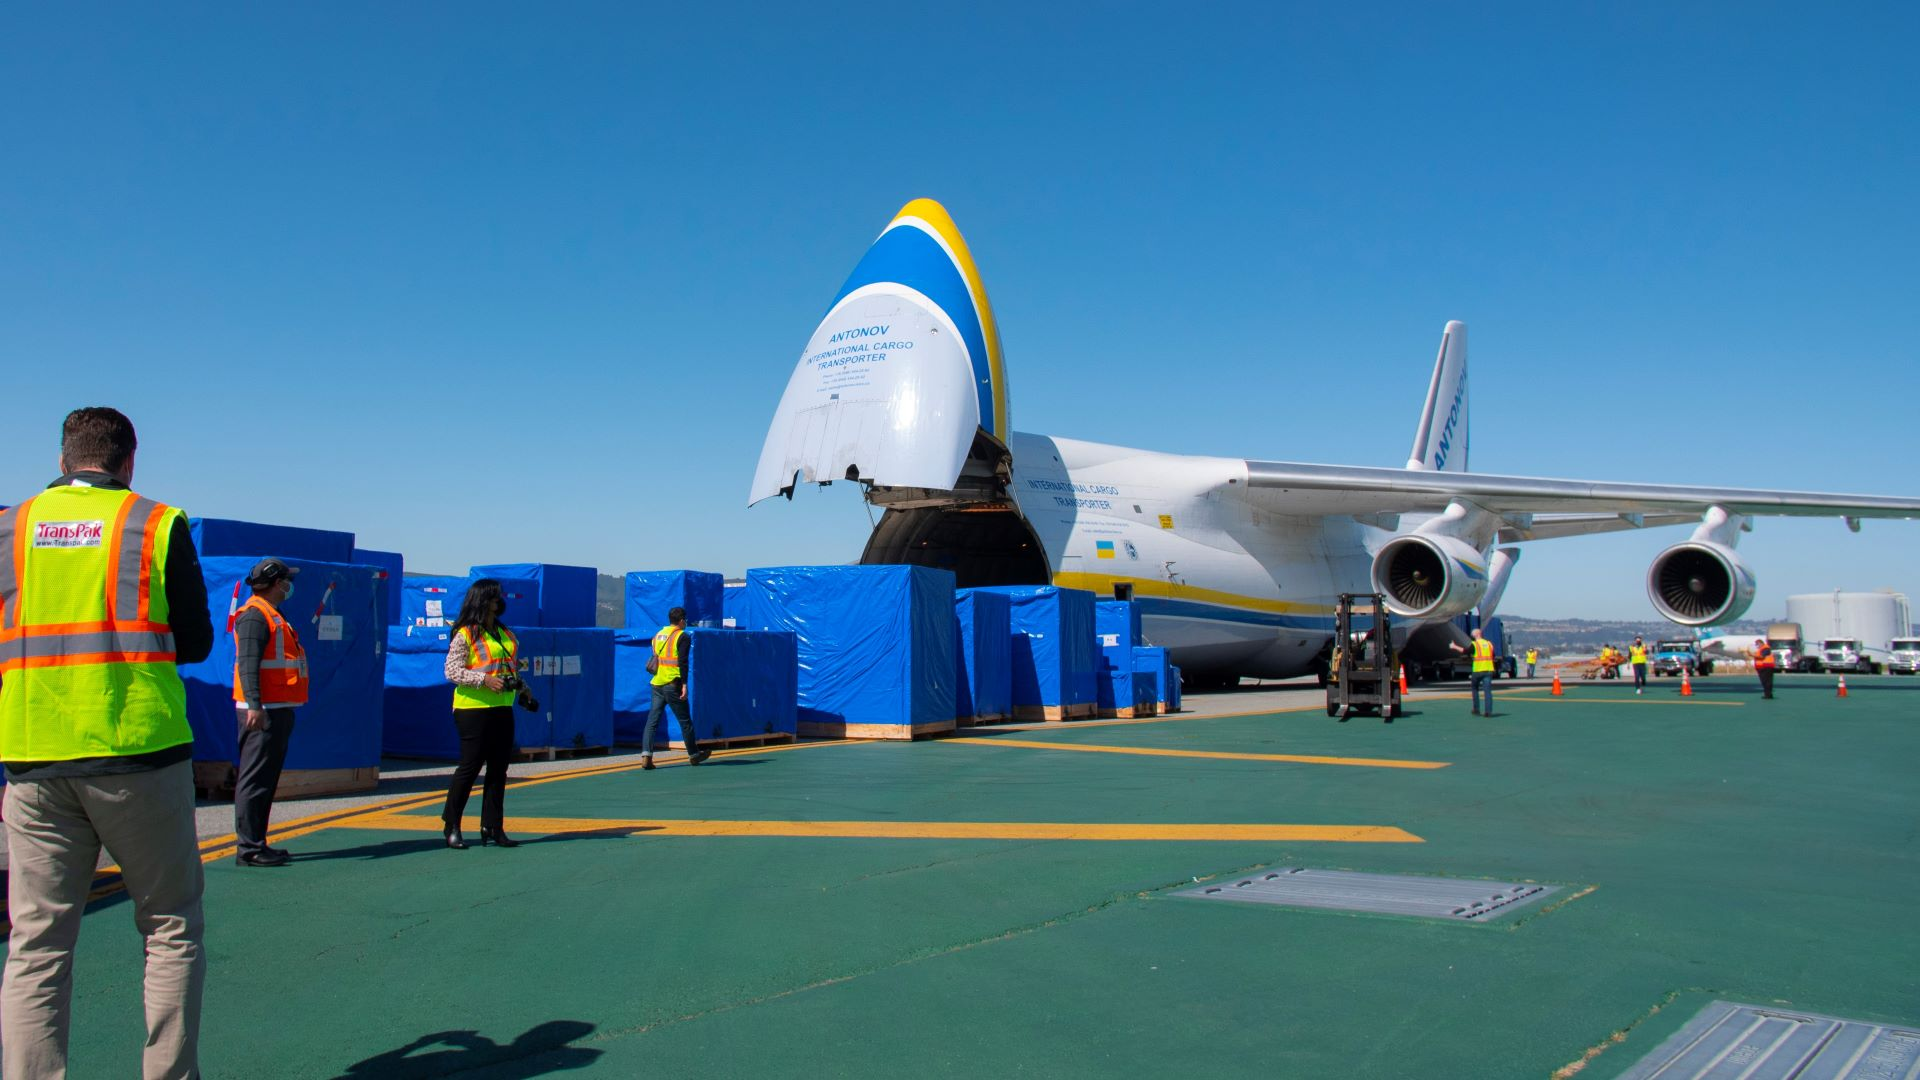 Large crates covered with blue tarps lined up in front of a nose-loading air cargo jet on a clear blue day.